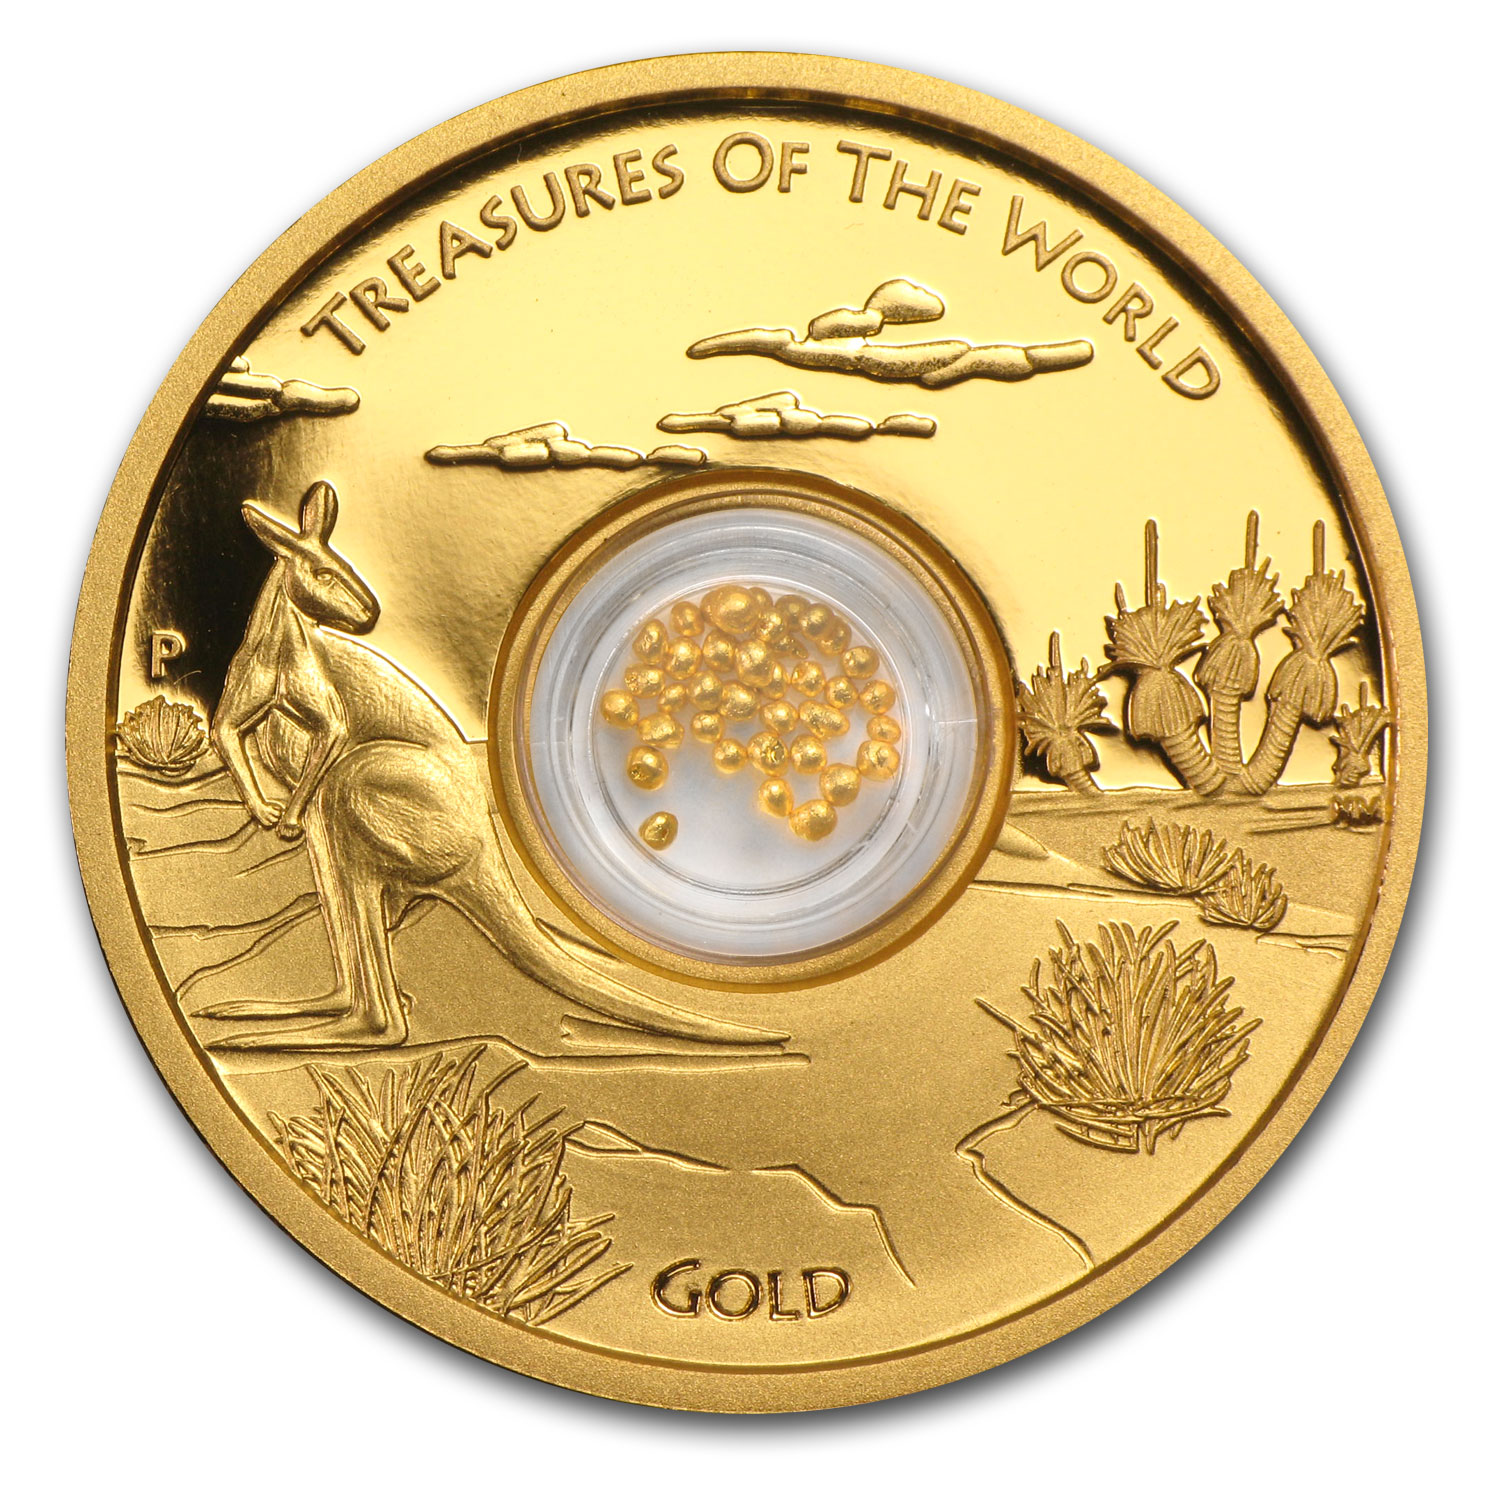 2014 Treasures of the World - Australia 1 oz Gold Locket